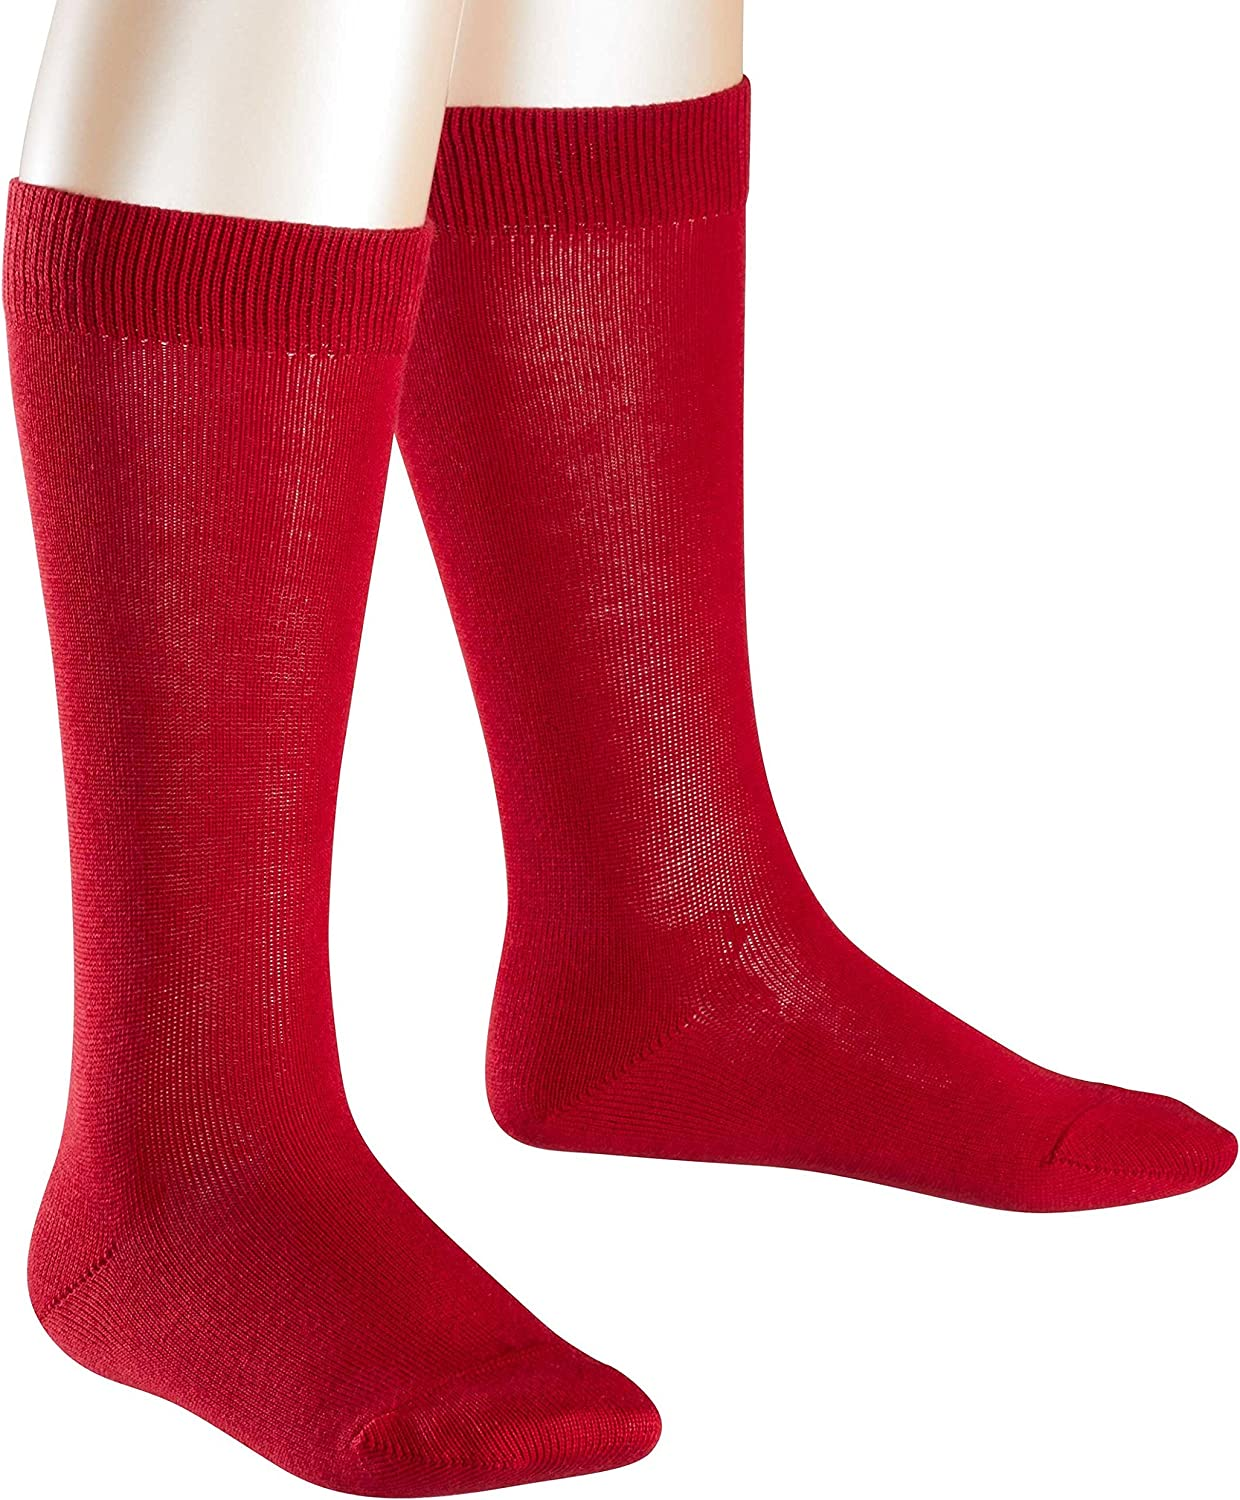 durable EU 23-42 Multiple Colours 94/% Cotton UK sizes 6 Year-round quality 1 Pair kid FALKE Kids Family Knee-Highs ideal for boots - 8